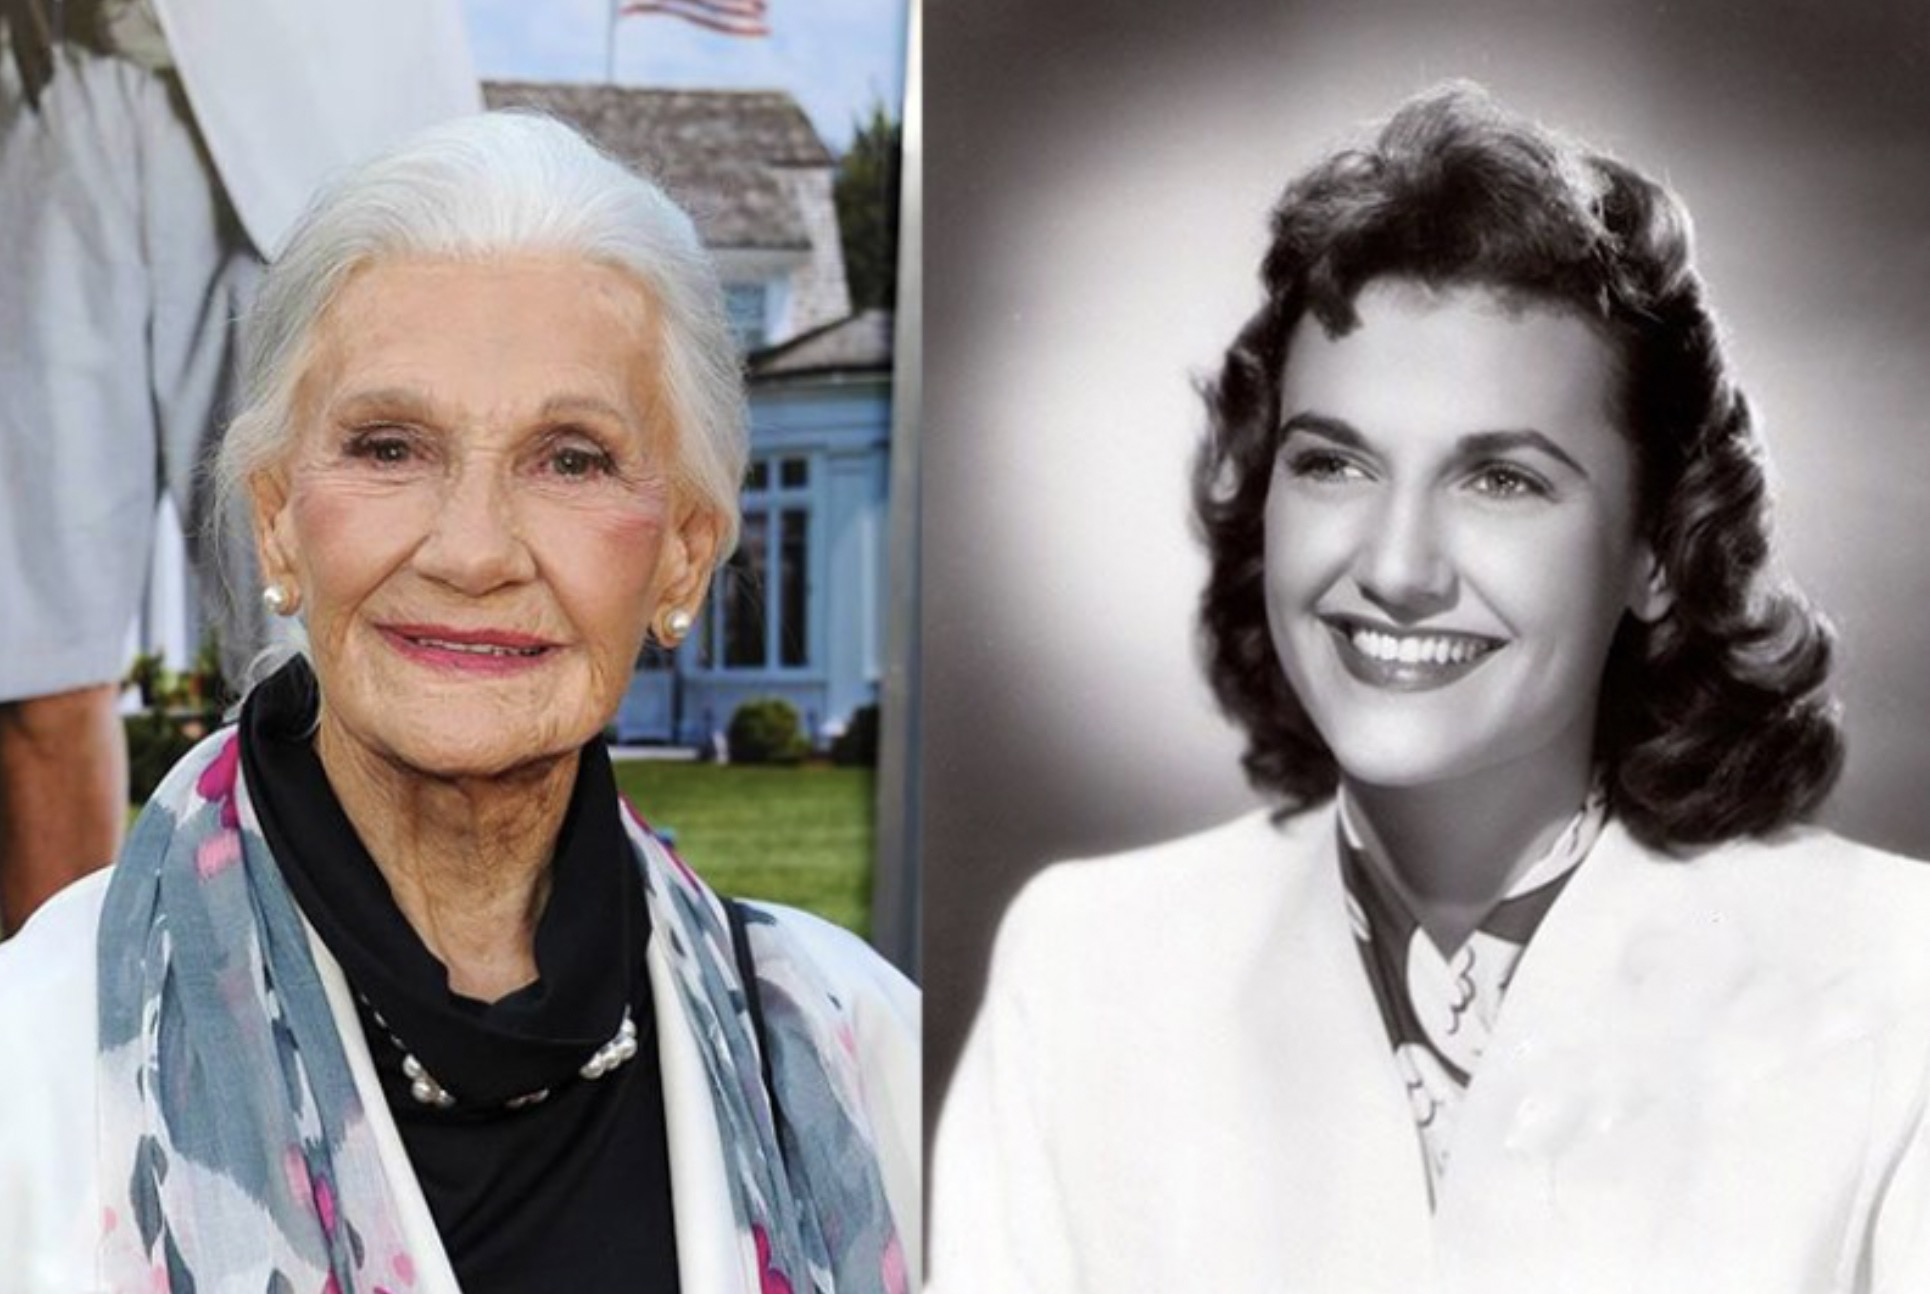 PEGGY STEWART, 94 YEARS OLD